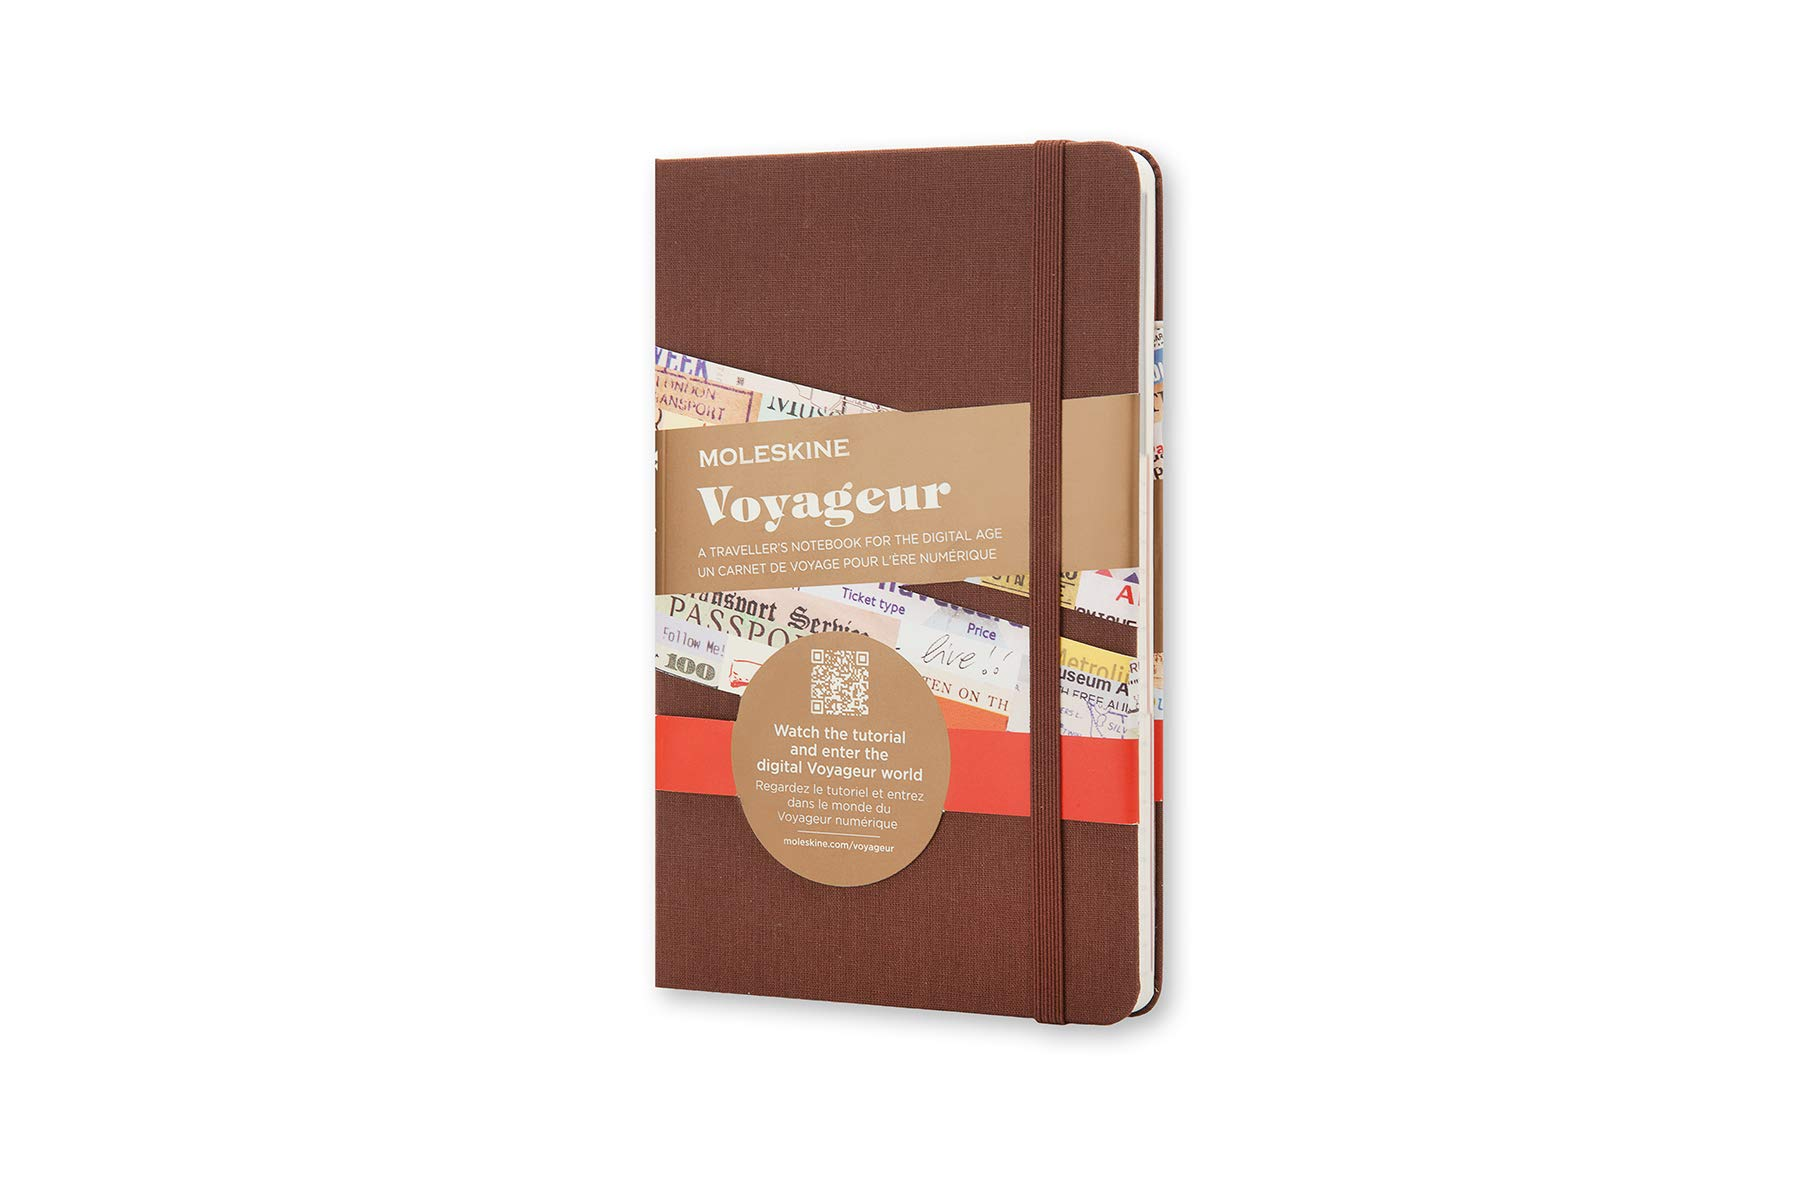 Moleskine Voyageur Notebook, Hard Cover, Medium (4.5'' x 7'') Nutmeg Brown